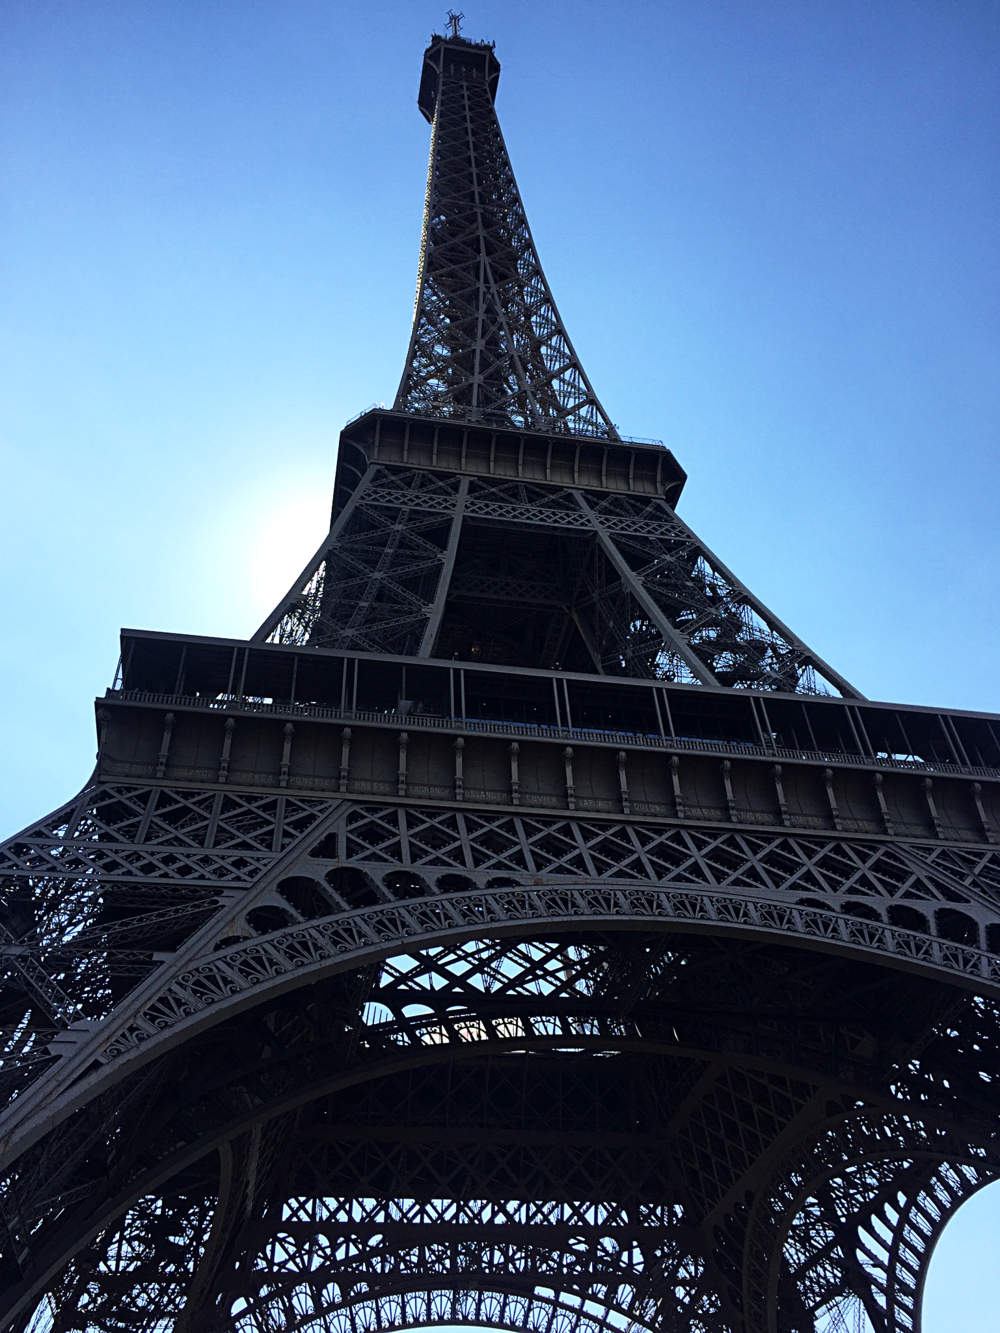 Our own little eclipse at the Eiffel Tower.